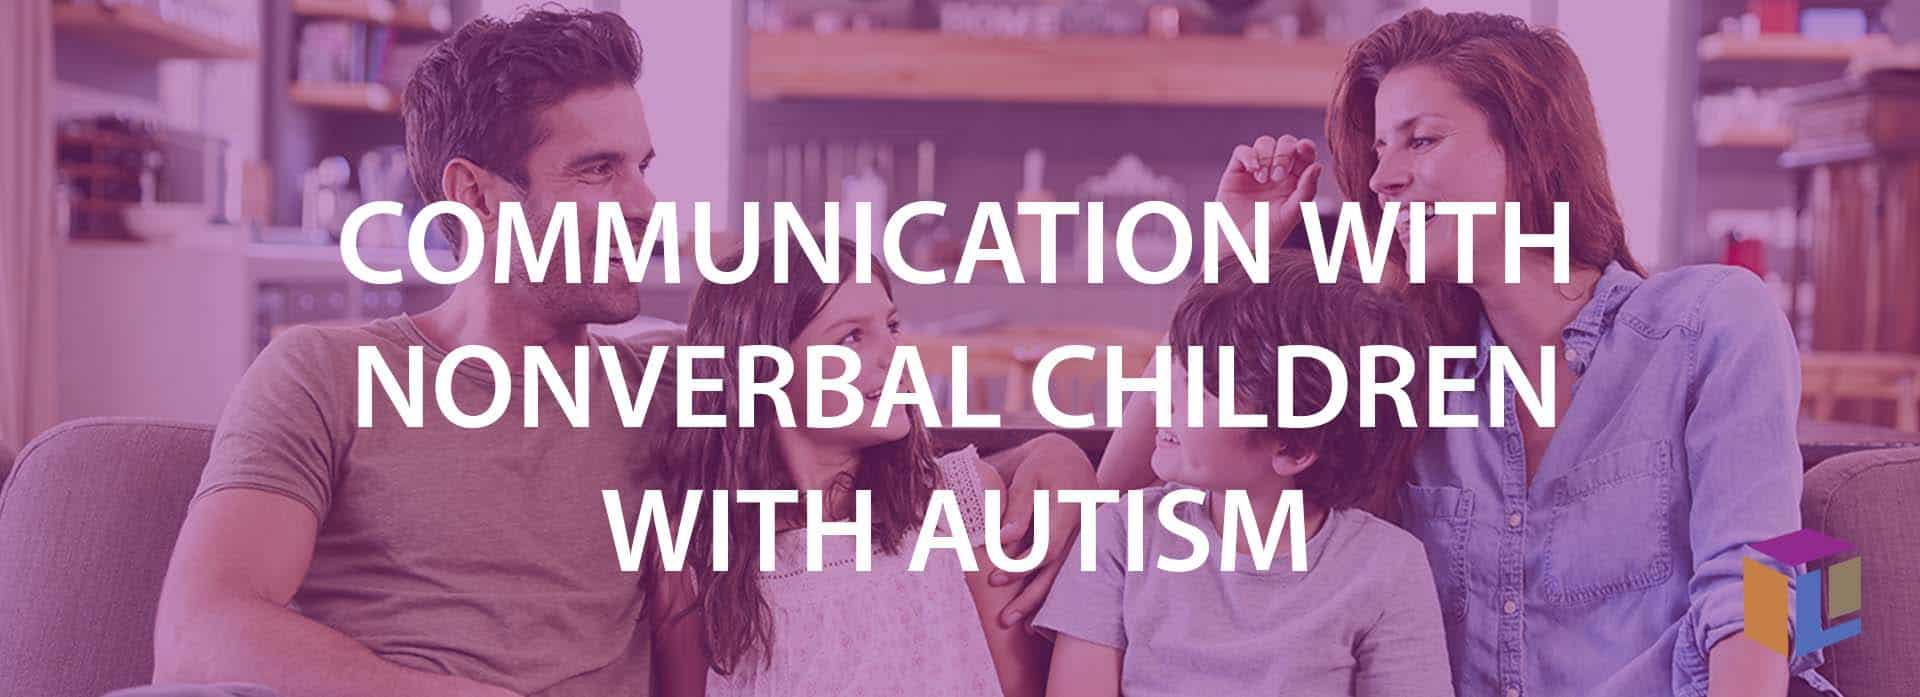 Communication With Nonverbal Children With Autism